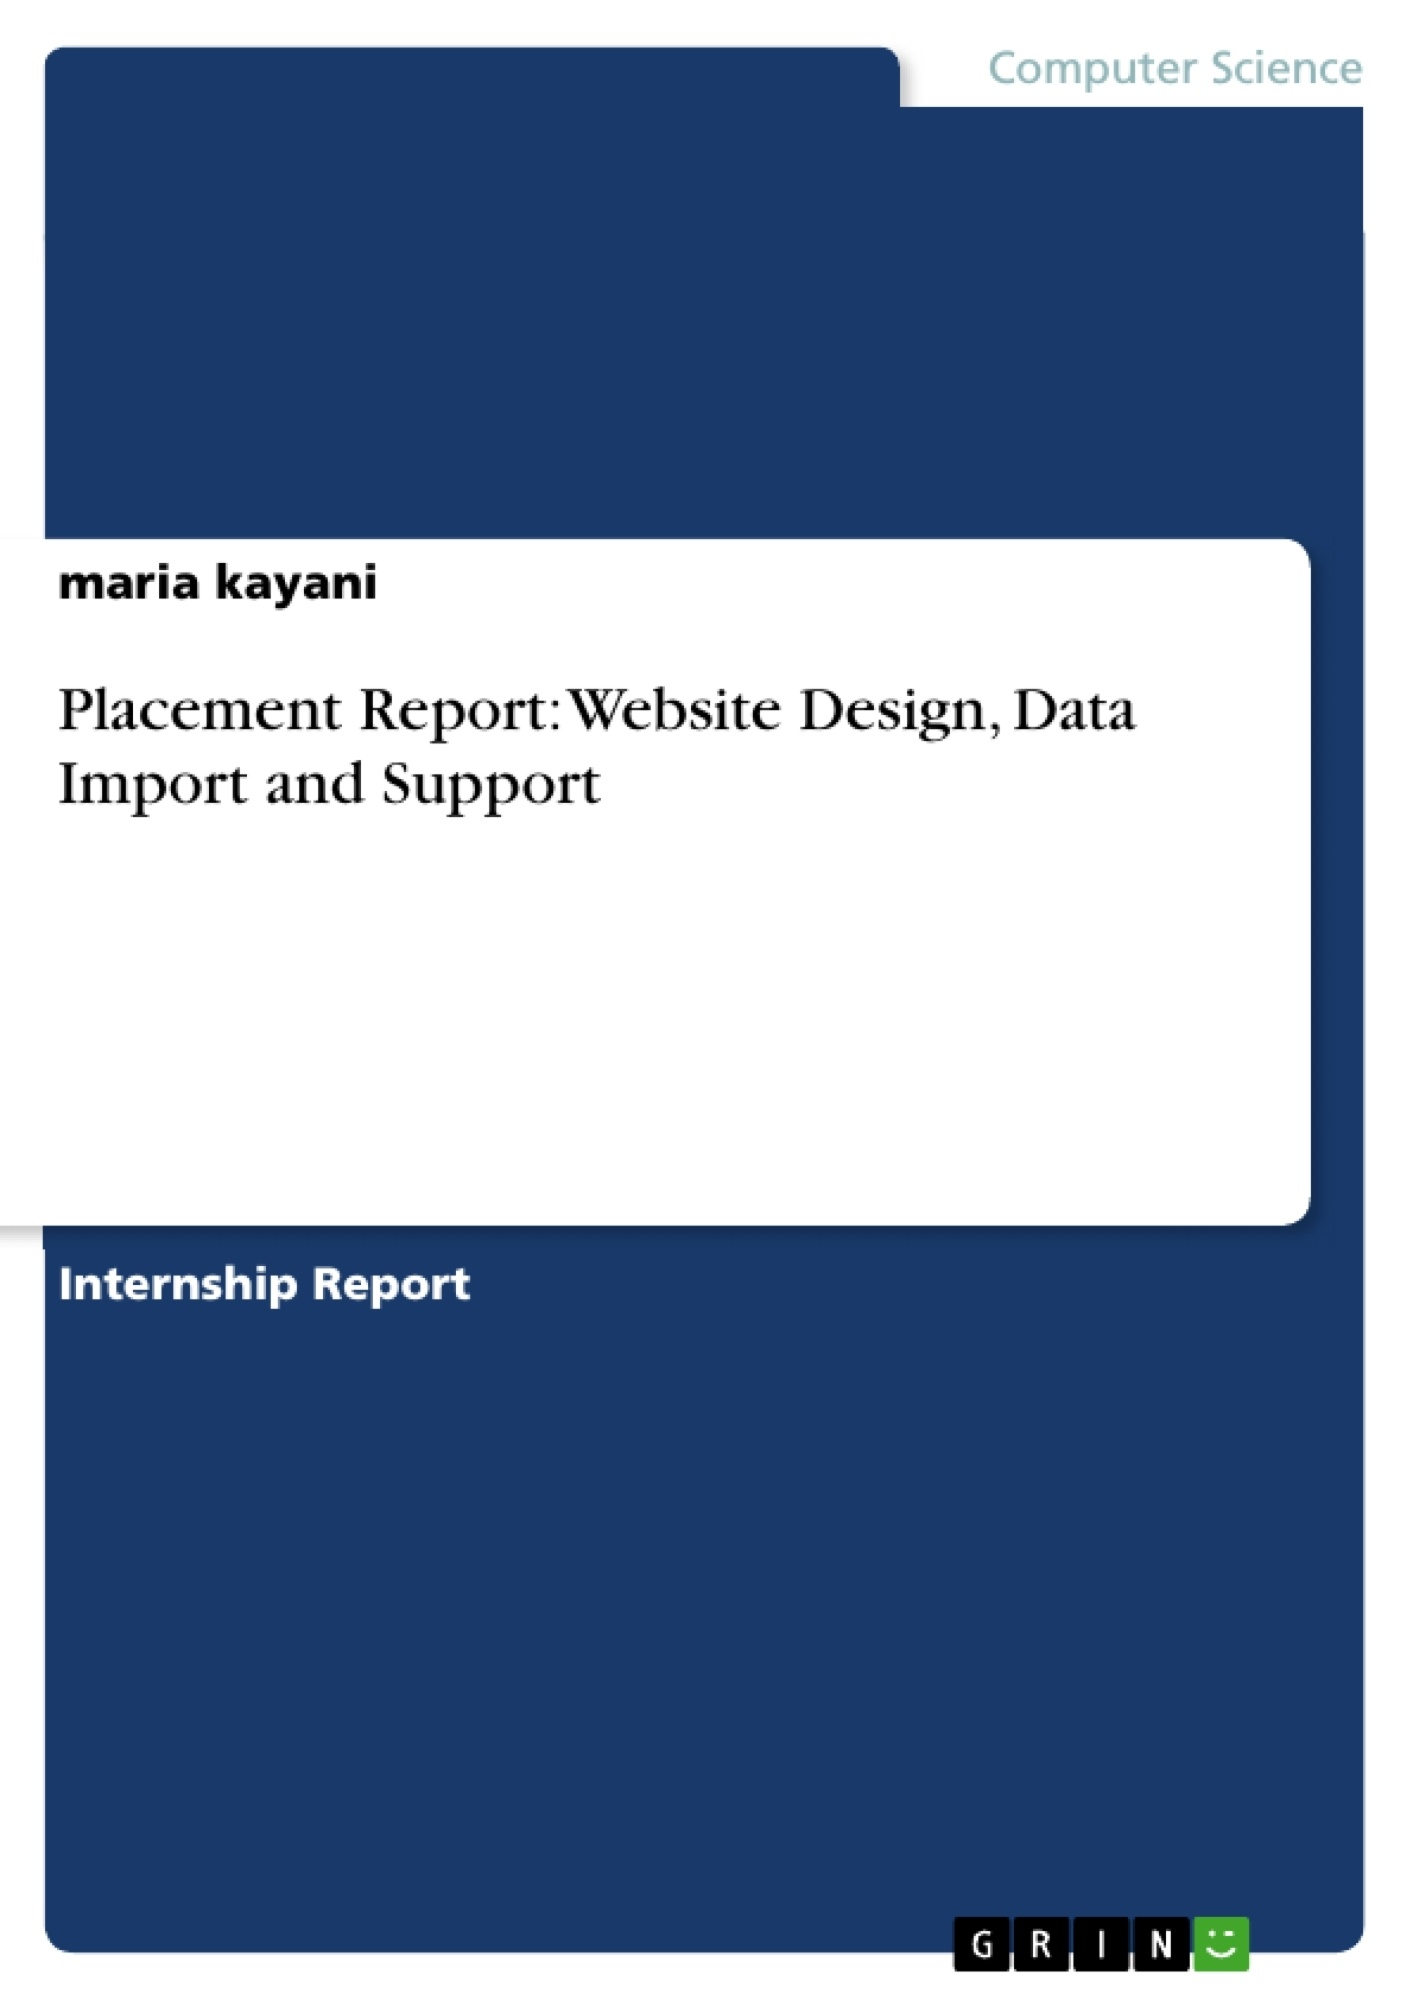 Title: Placement Report: Website Design, Data Import and Support